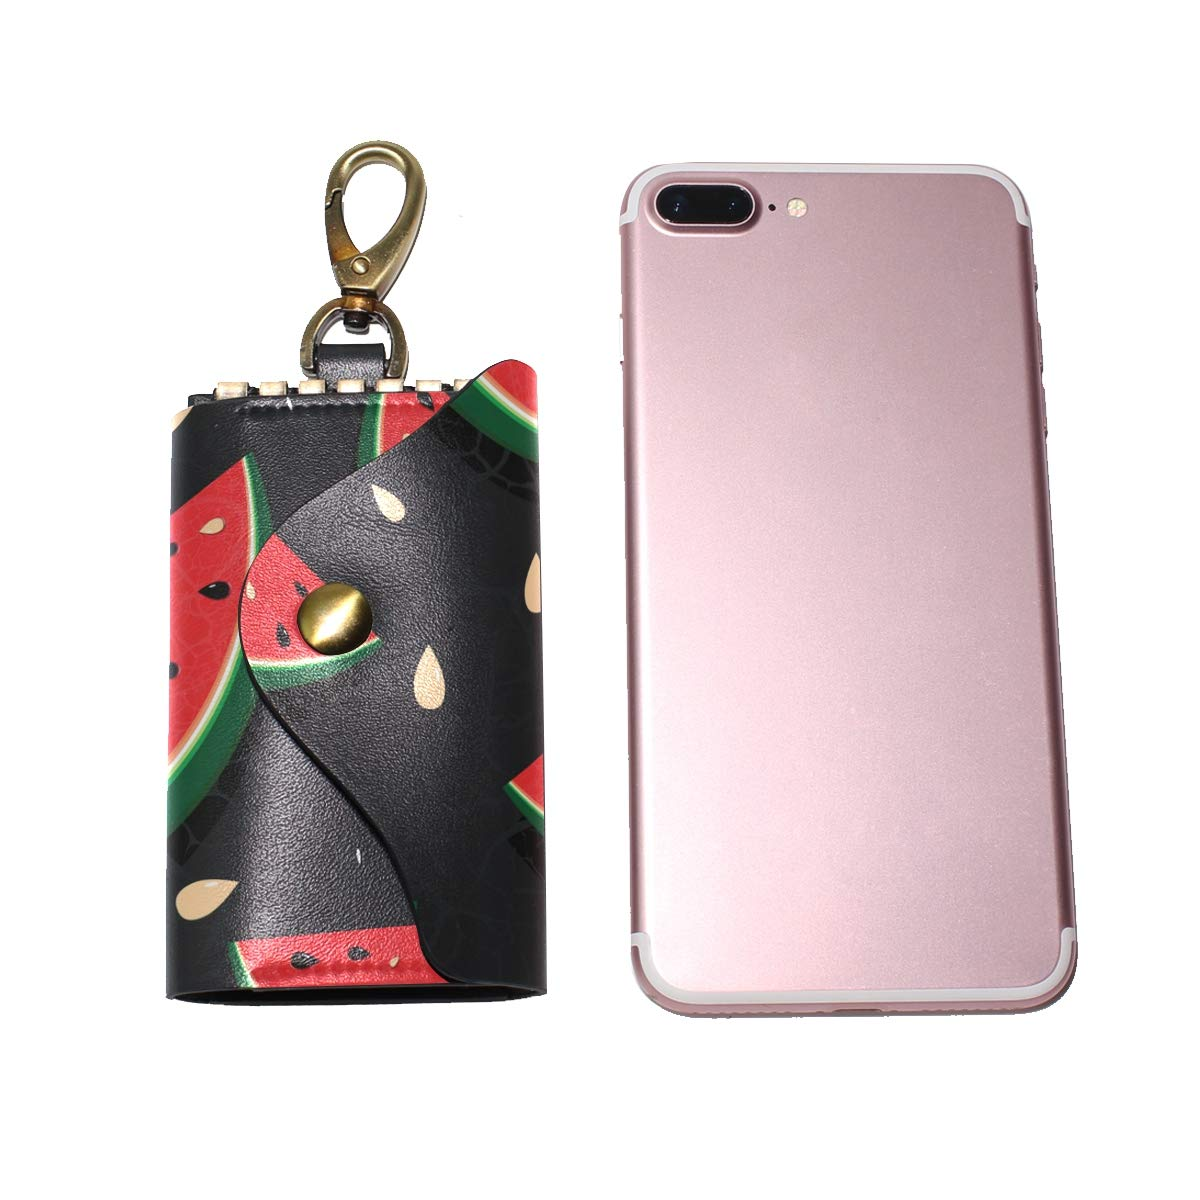 KEAKIA Watermelon Leather Key Case Wallets Tri-fold Key Holder Keychains with 6 Hooks 2 Slot Snap Closure for Men Women